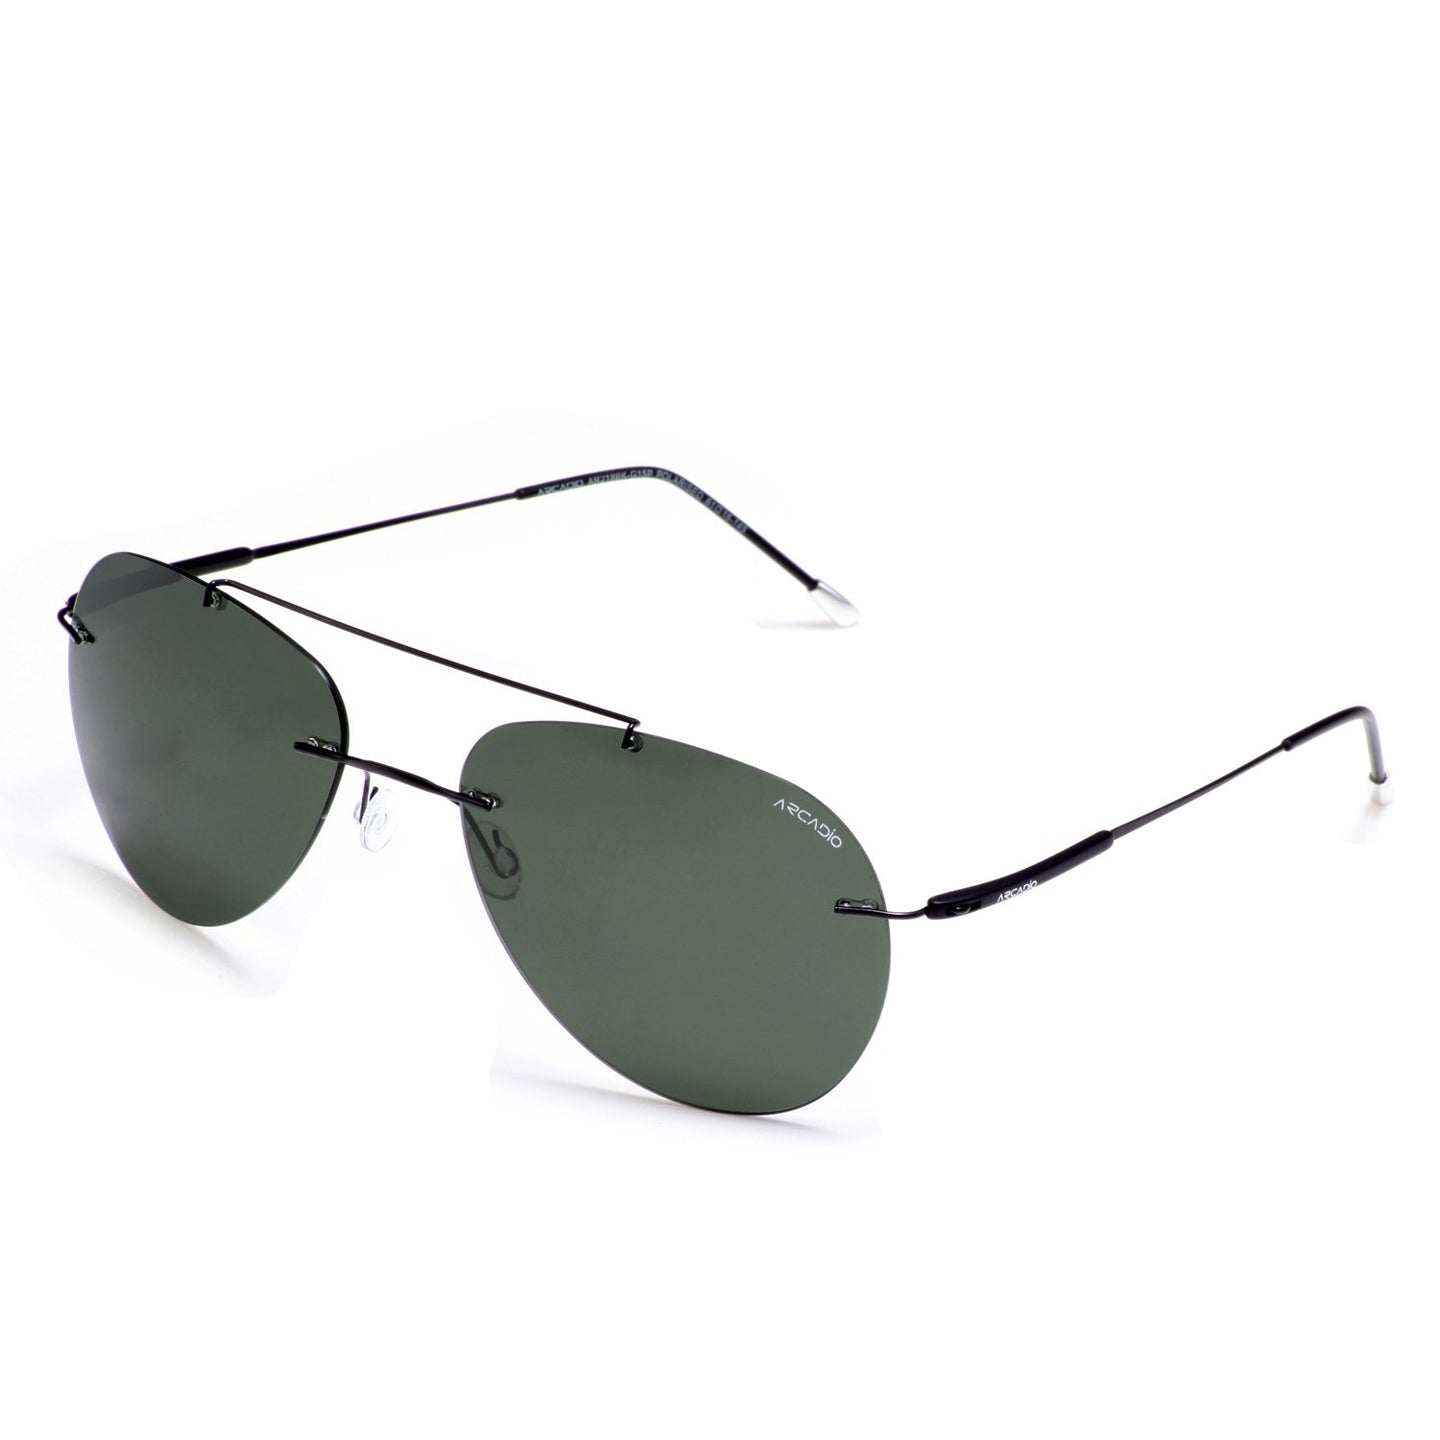 Rimless Ultra Light Polarized Sunglass - AR218,G15p - Front